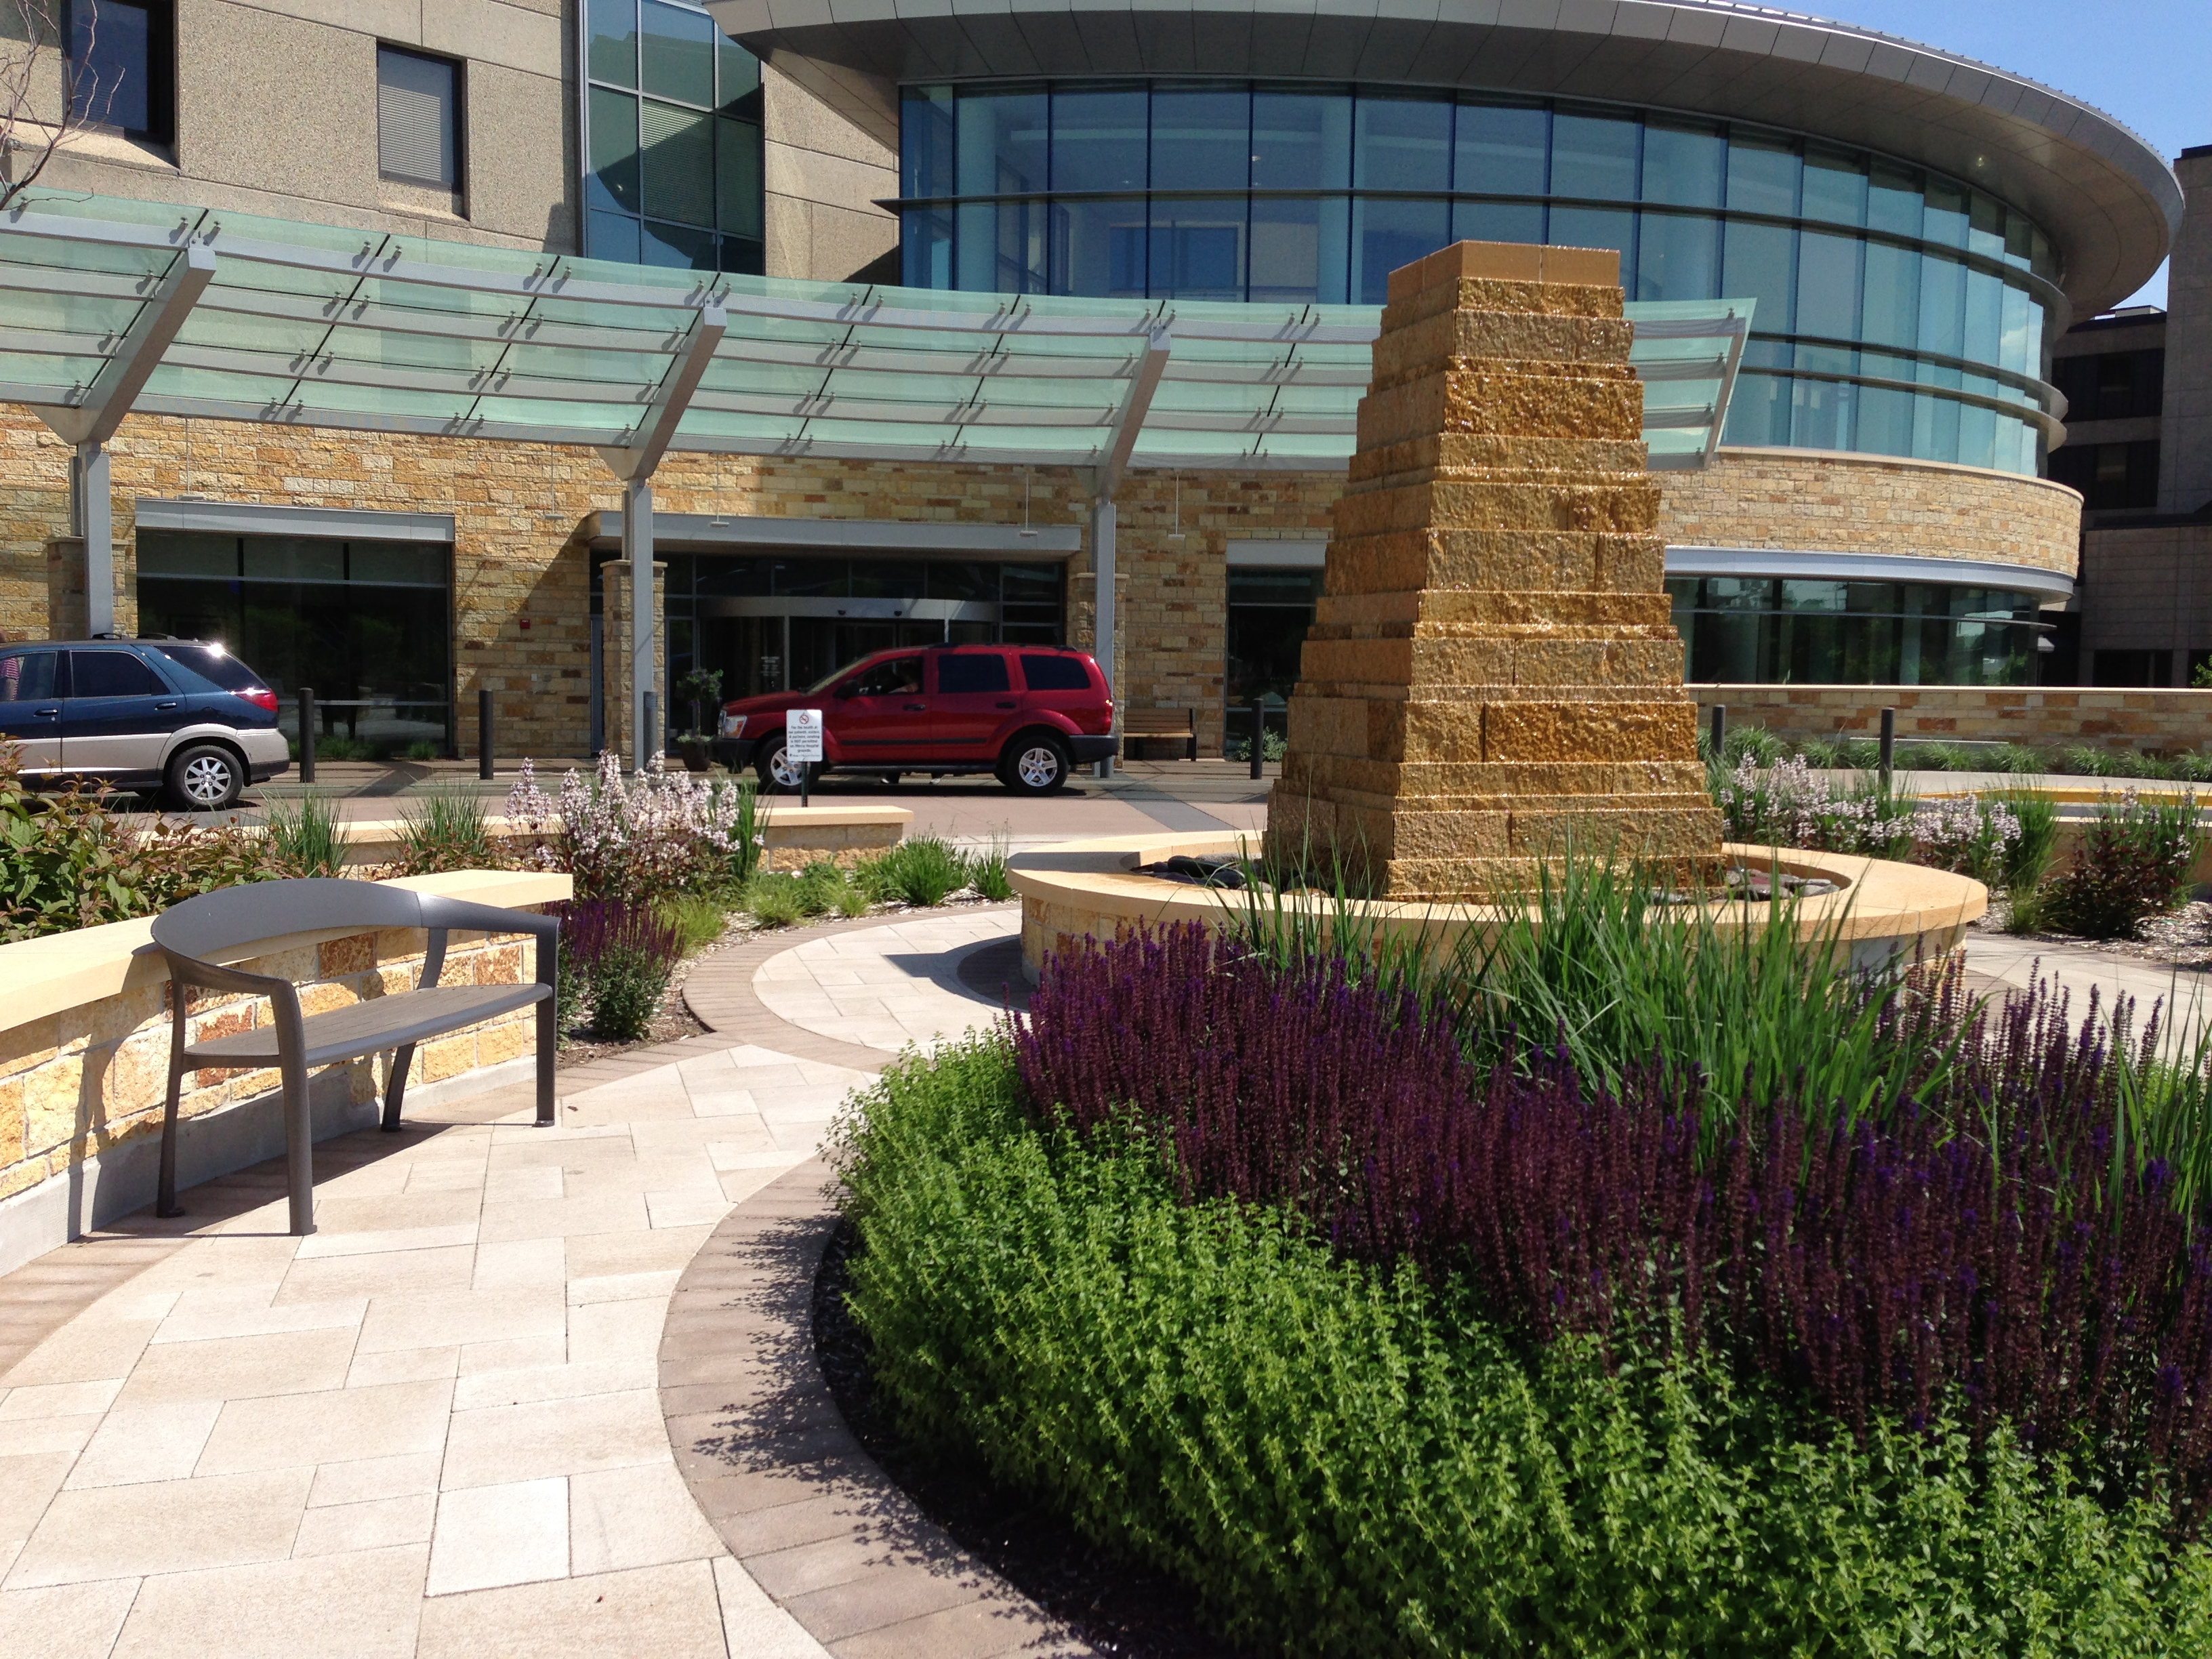 The tower-like water feature is a sentinel at the entry to the hospital and anchors a modest contemplative garden where lush plantings and low limestone seatwalls embrace users and buffer the energy of the parking lots, drive aisles and front door.